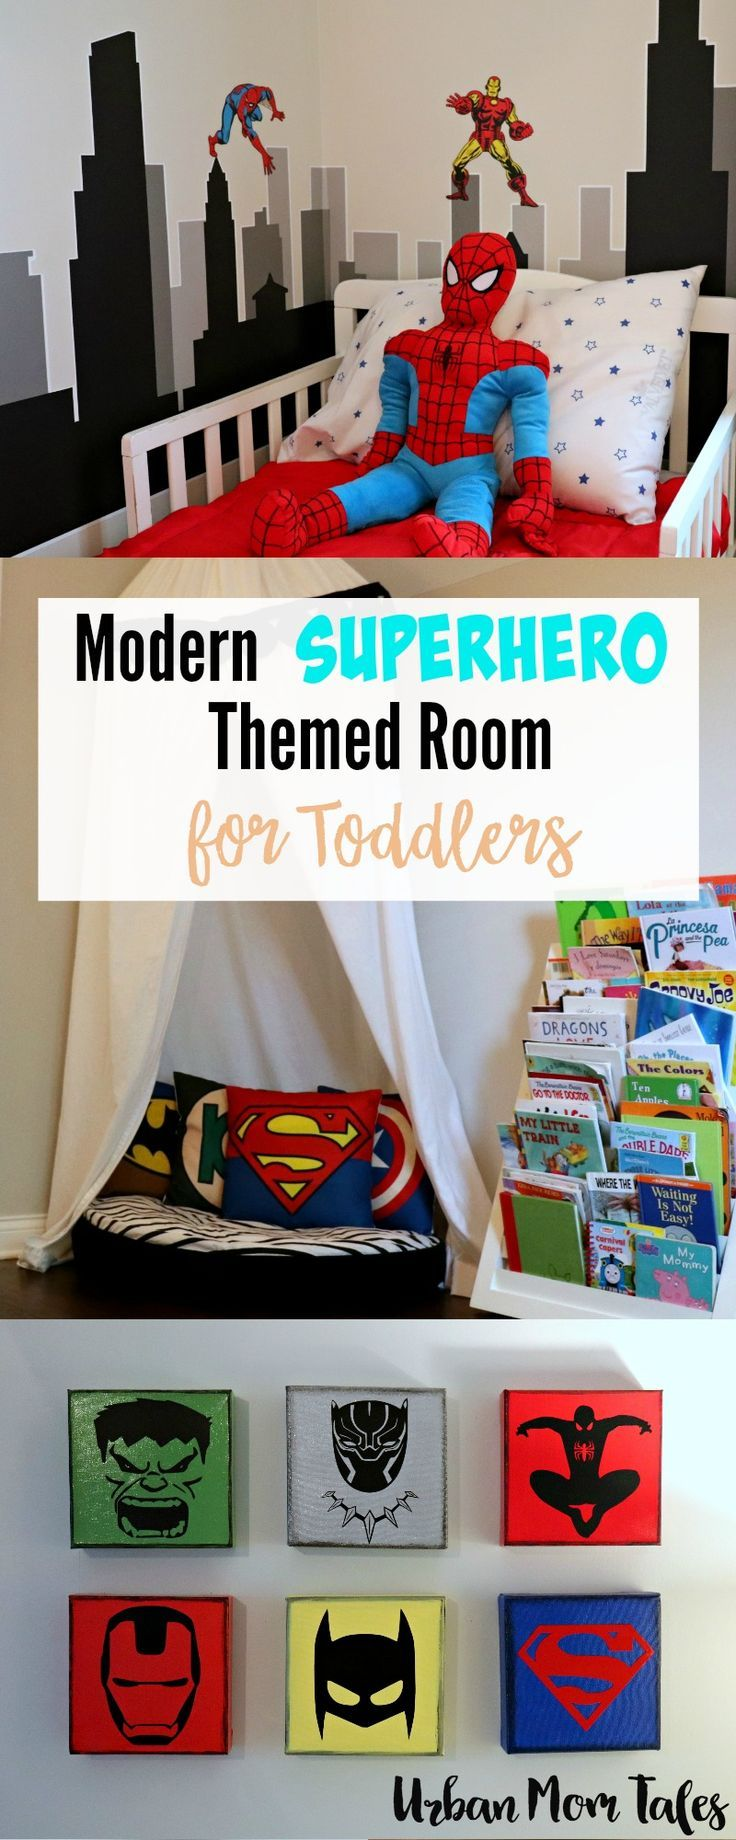 Modern Superhero Themed Room for Toddlers images